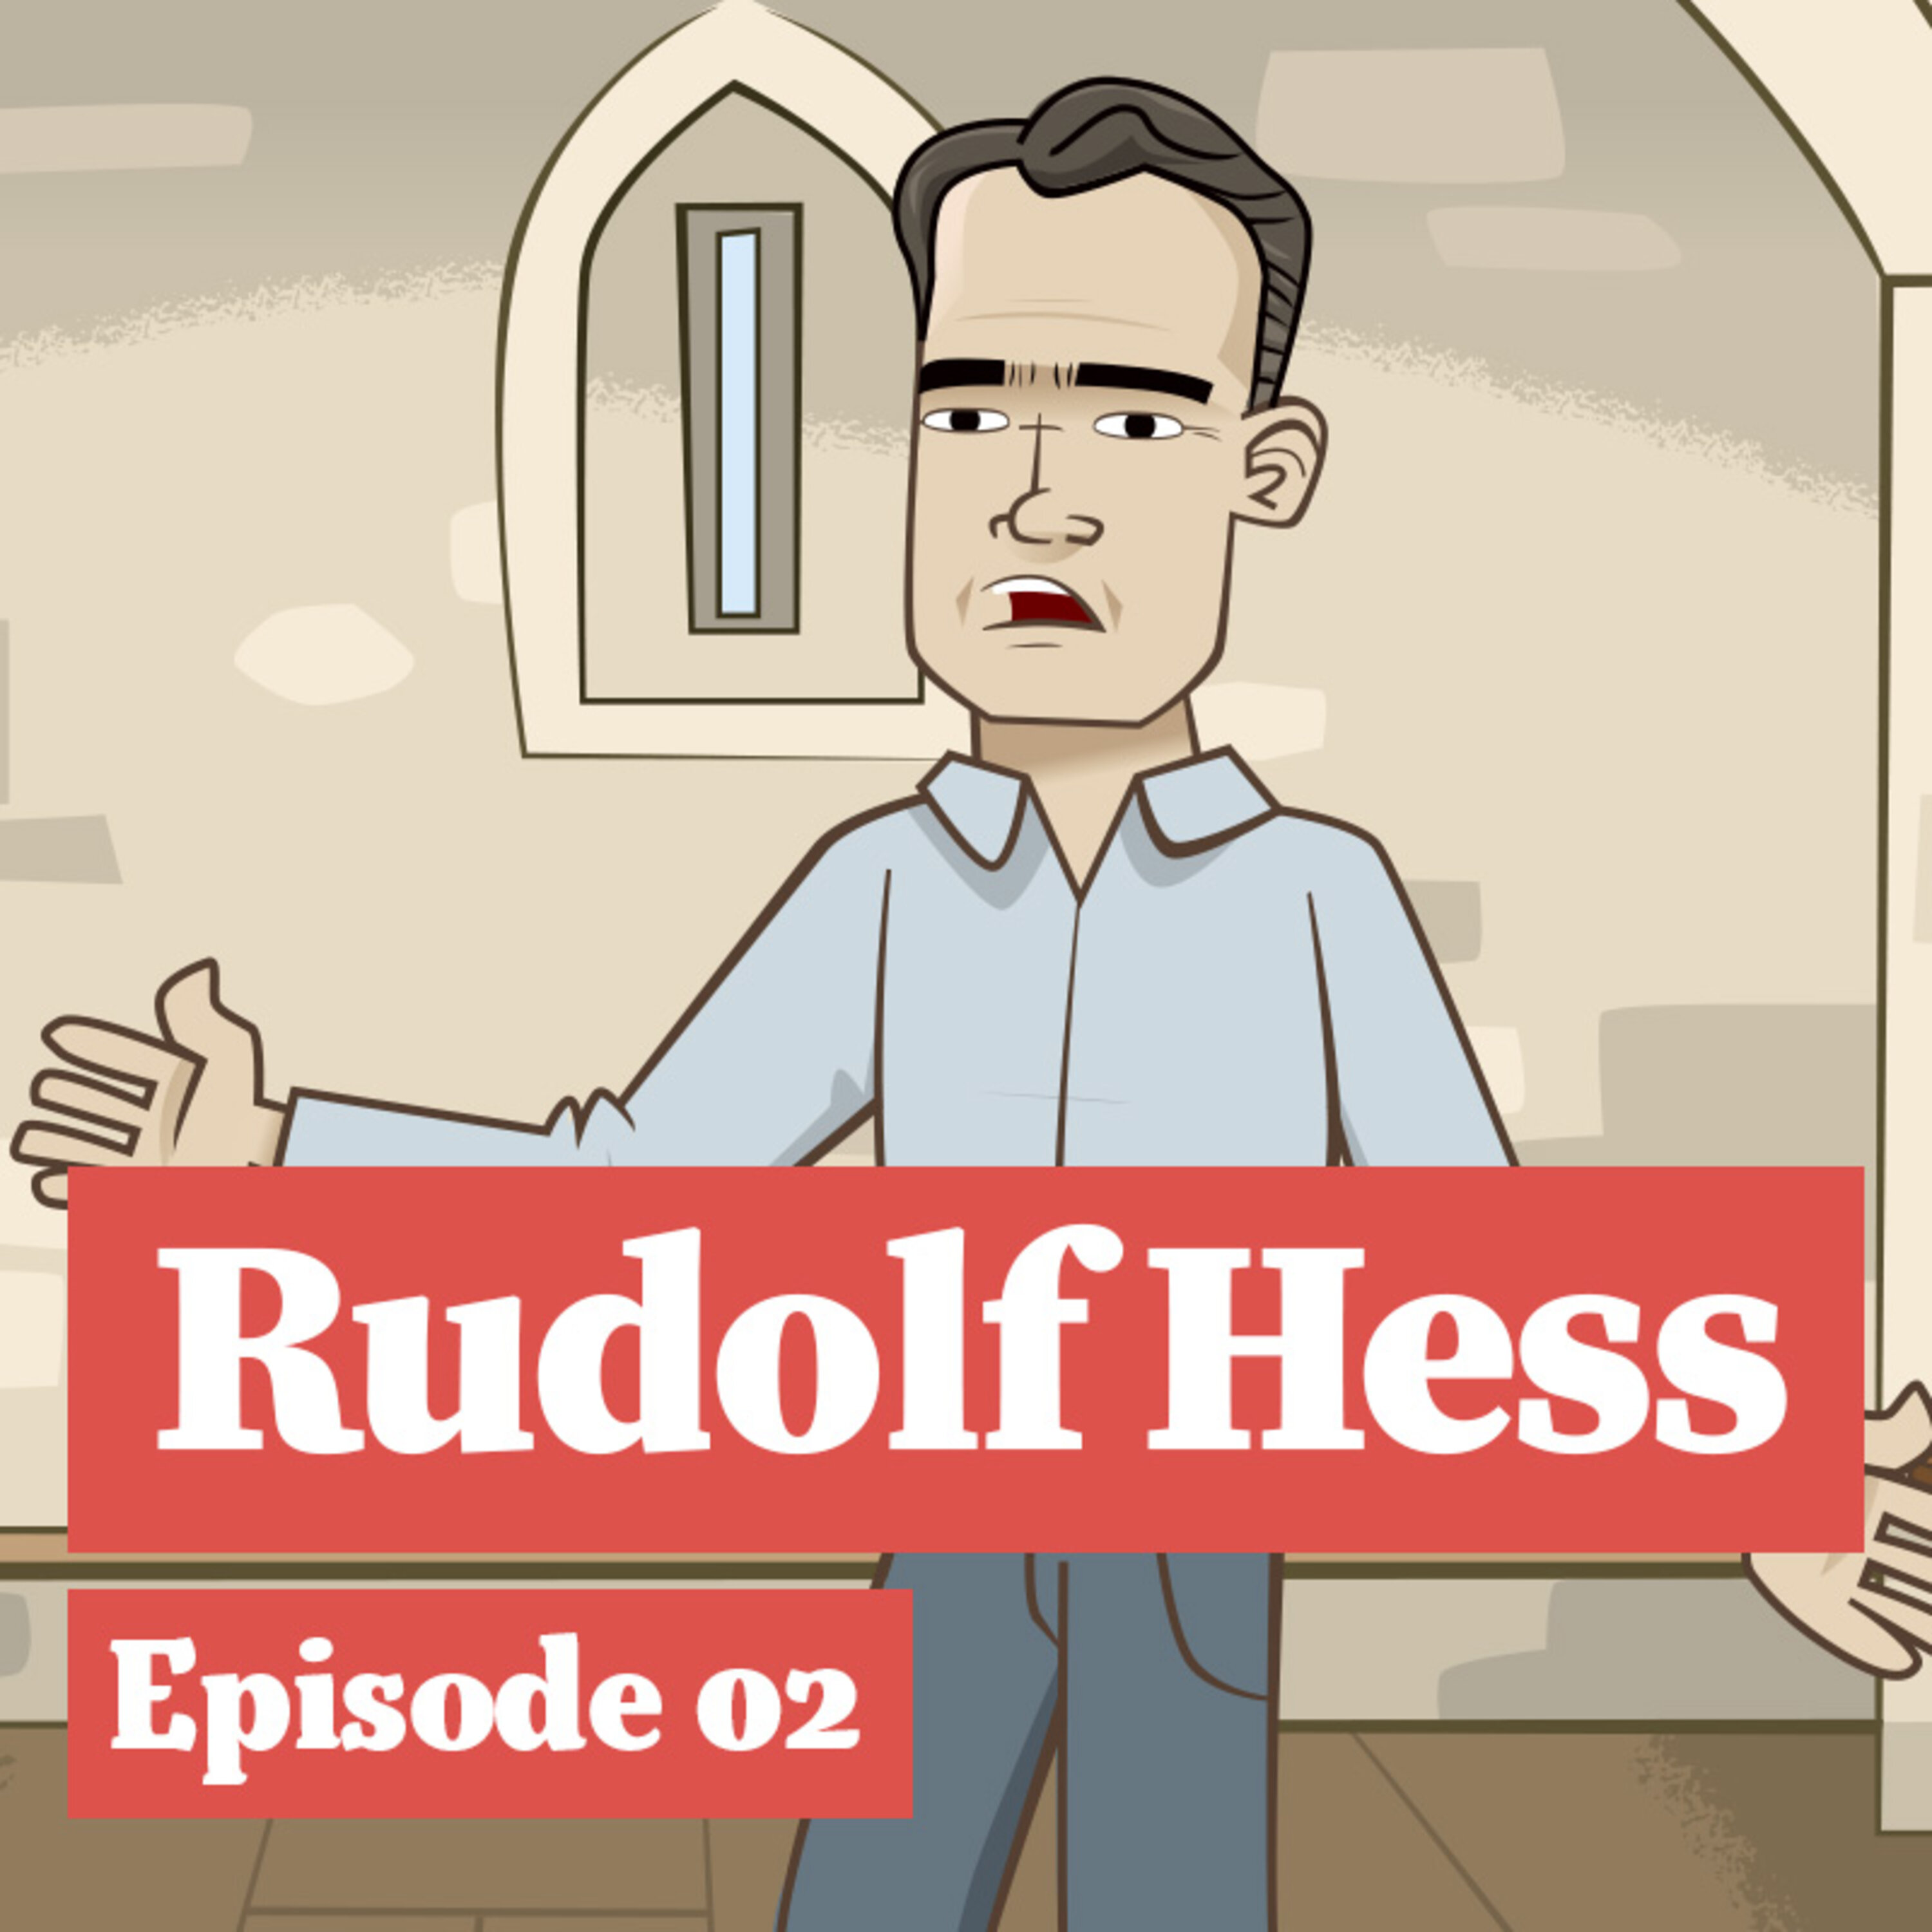 Rudolf Hess and the Tower of London in World War II